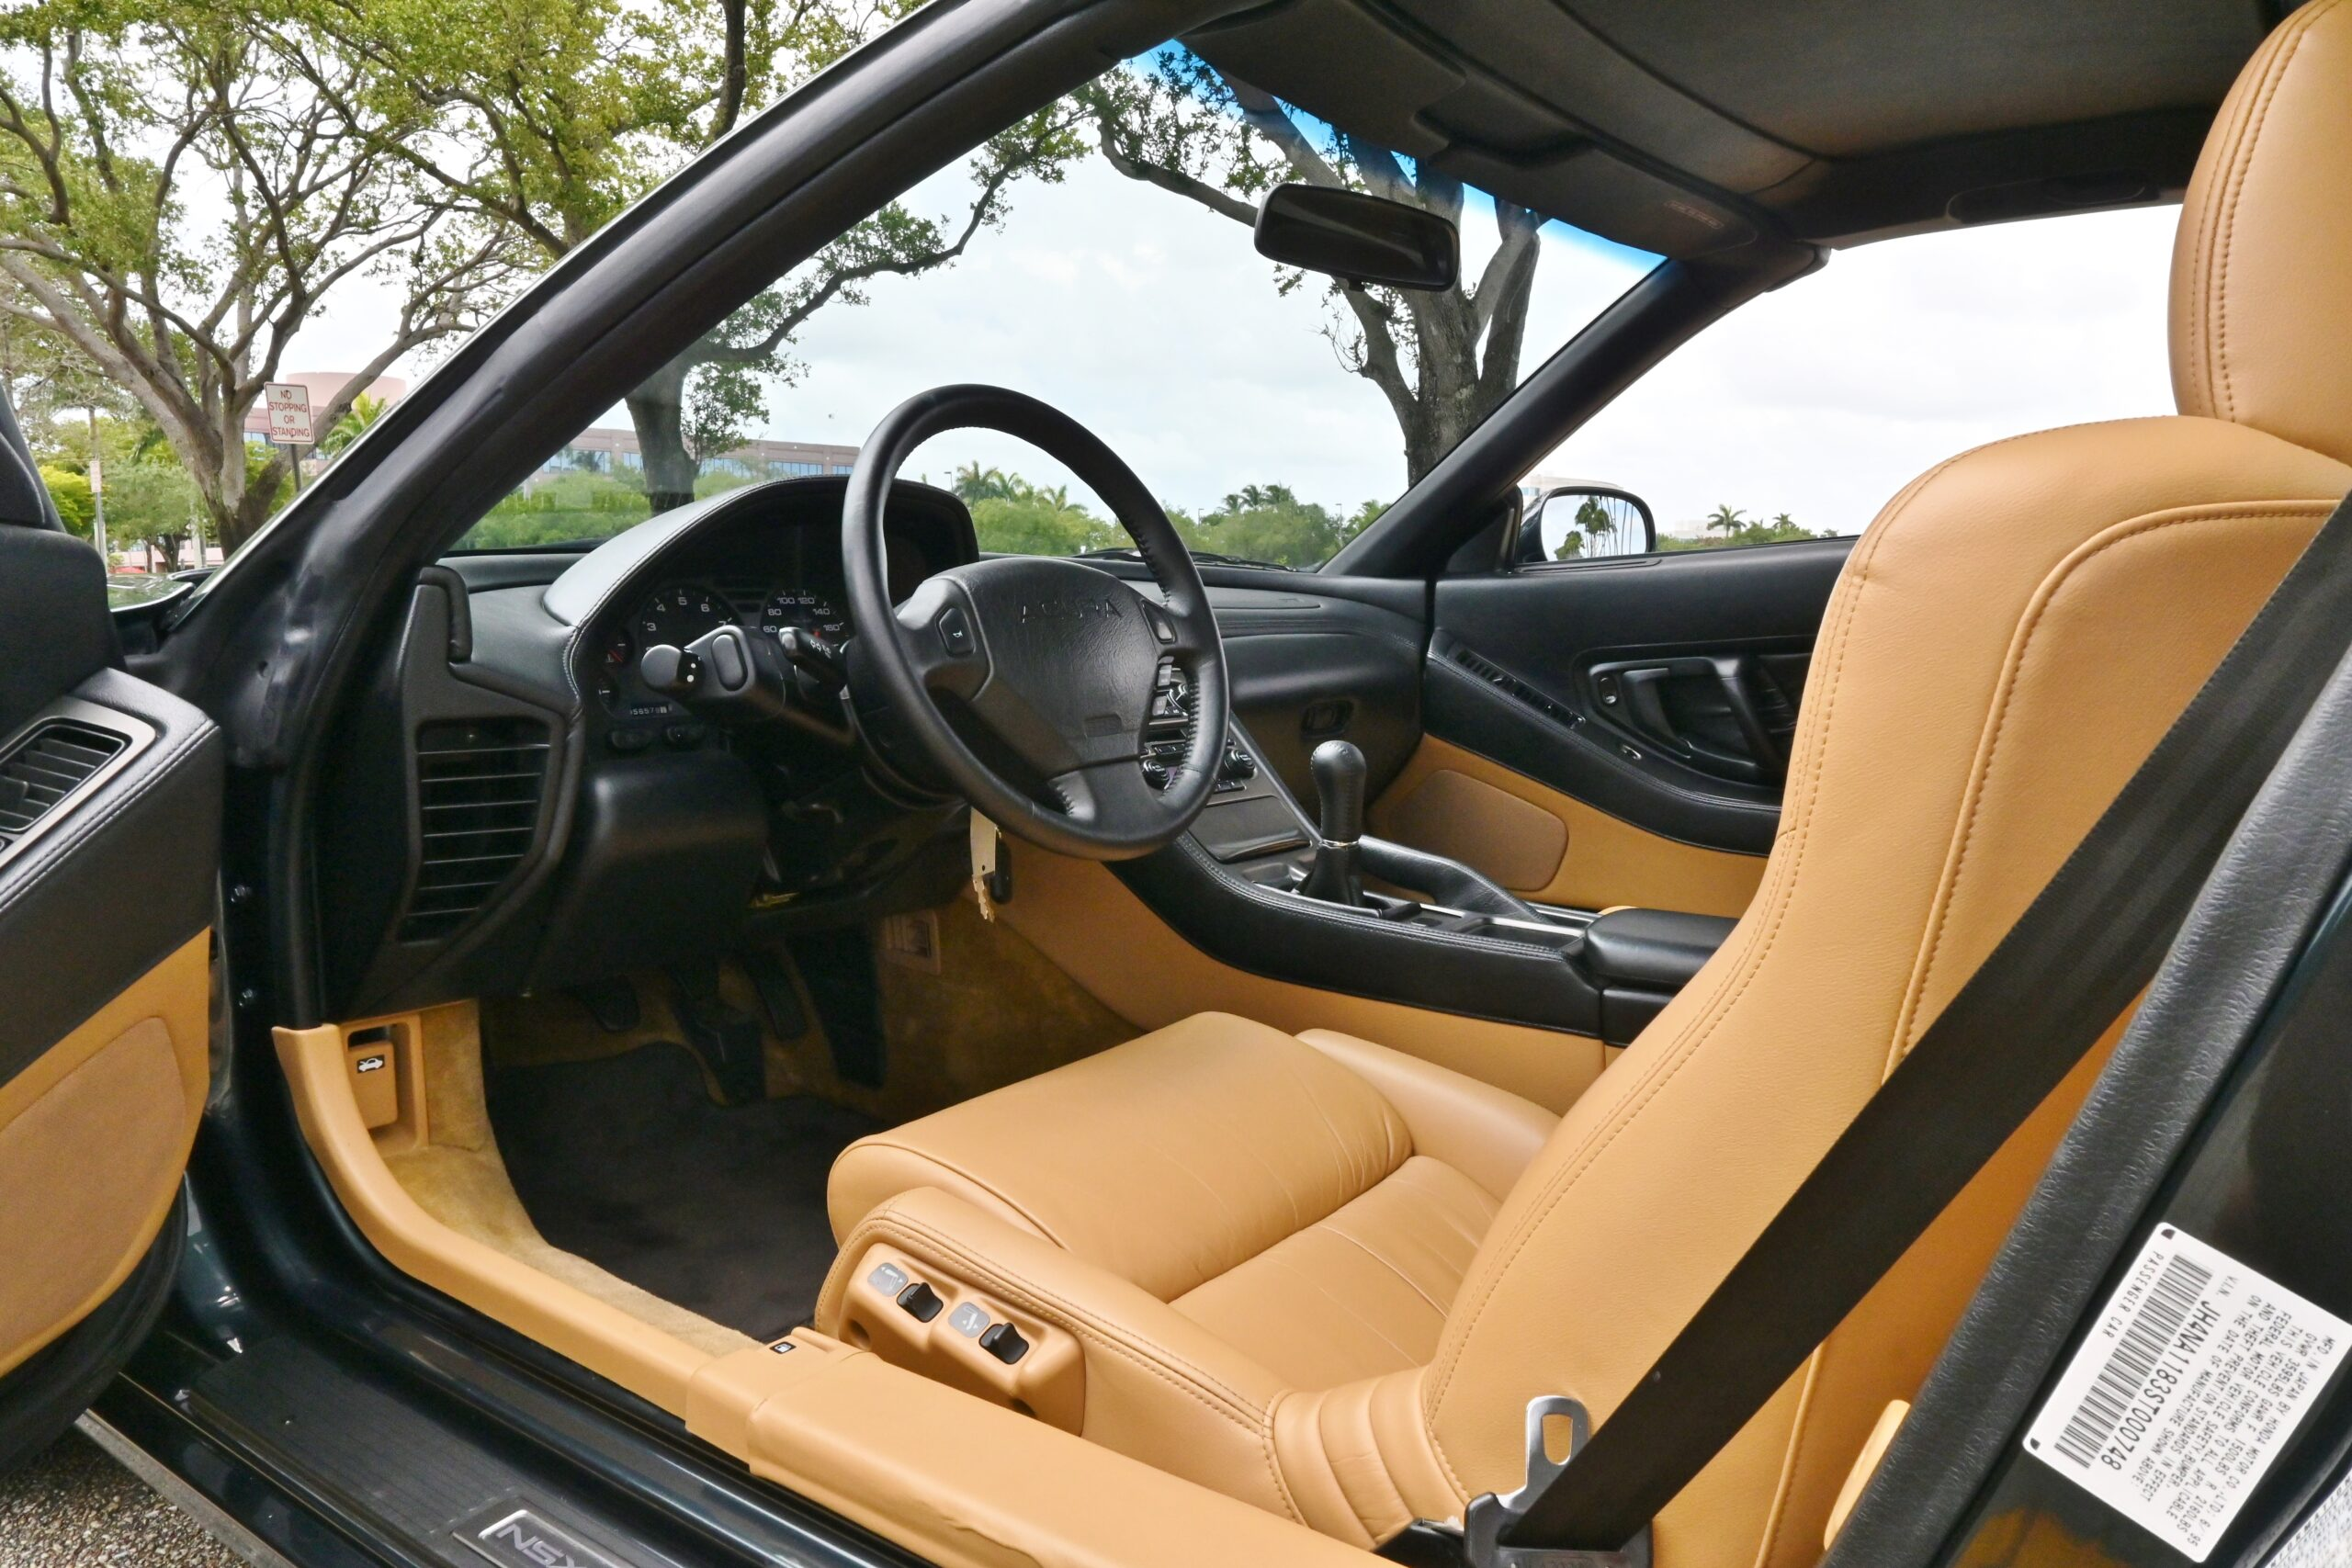 1995 Acura NSX T 1 of 67 In This Color Combo-Only 56K Miles -5 Speed Manual-100% Stock -Like New